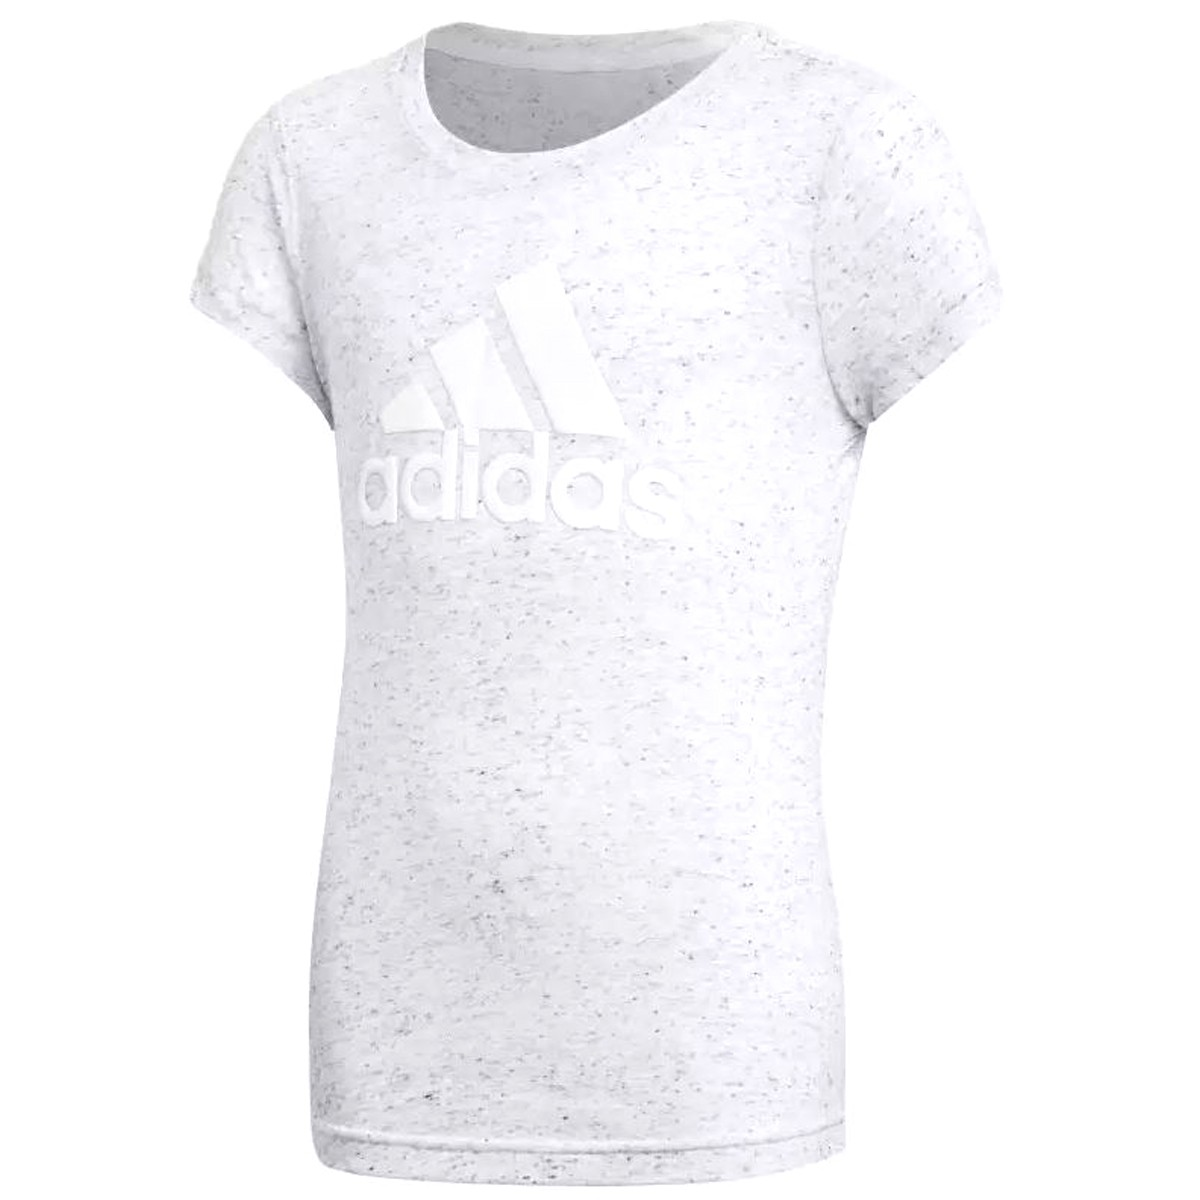 T SHIRT ADIDAS TRAINING JUNIOR FILLE WINNER ID ADIDAS